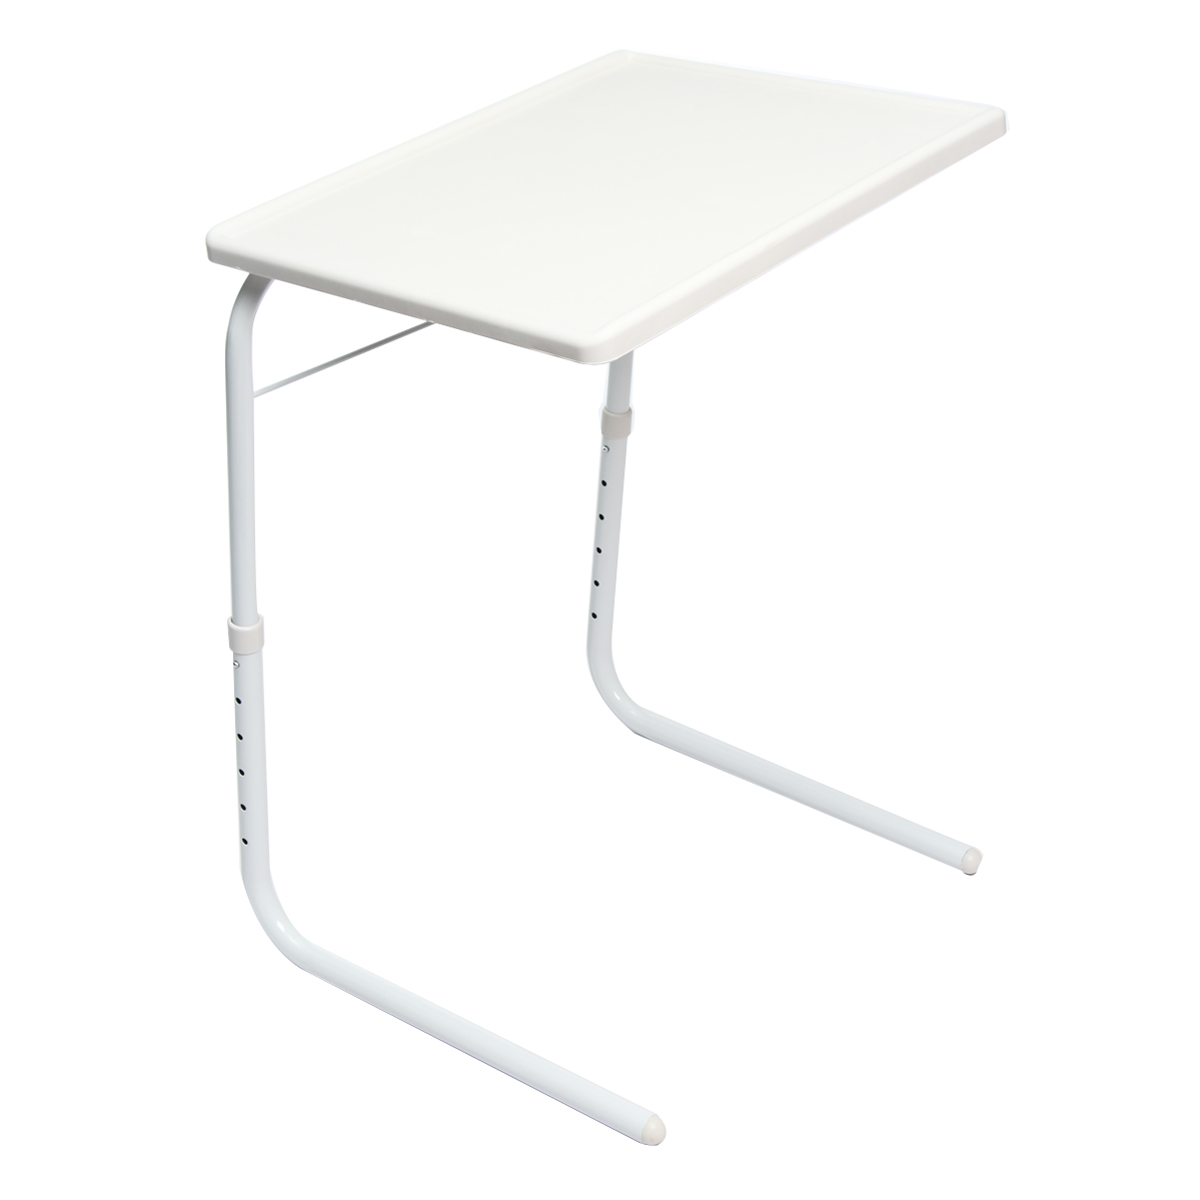 Adjustable Folding Table Dinner Coffee Laptop Table Mate Travelling Tray Tall 52x40x70cm Laptop Accessories Lapdesks